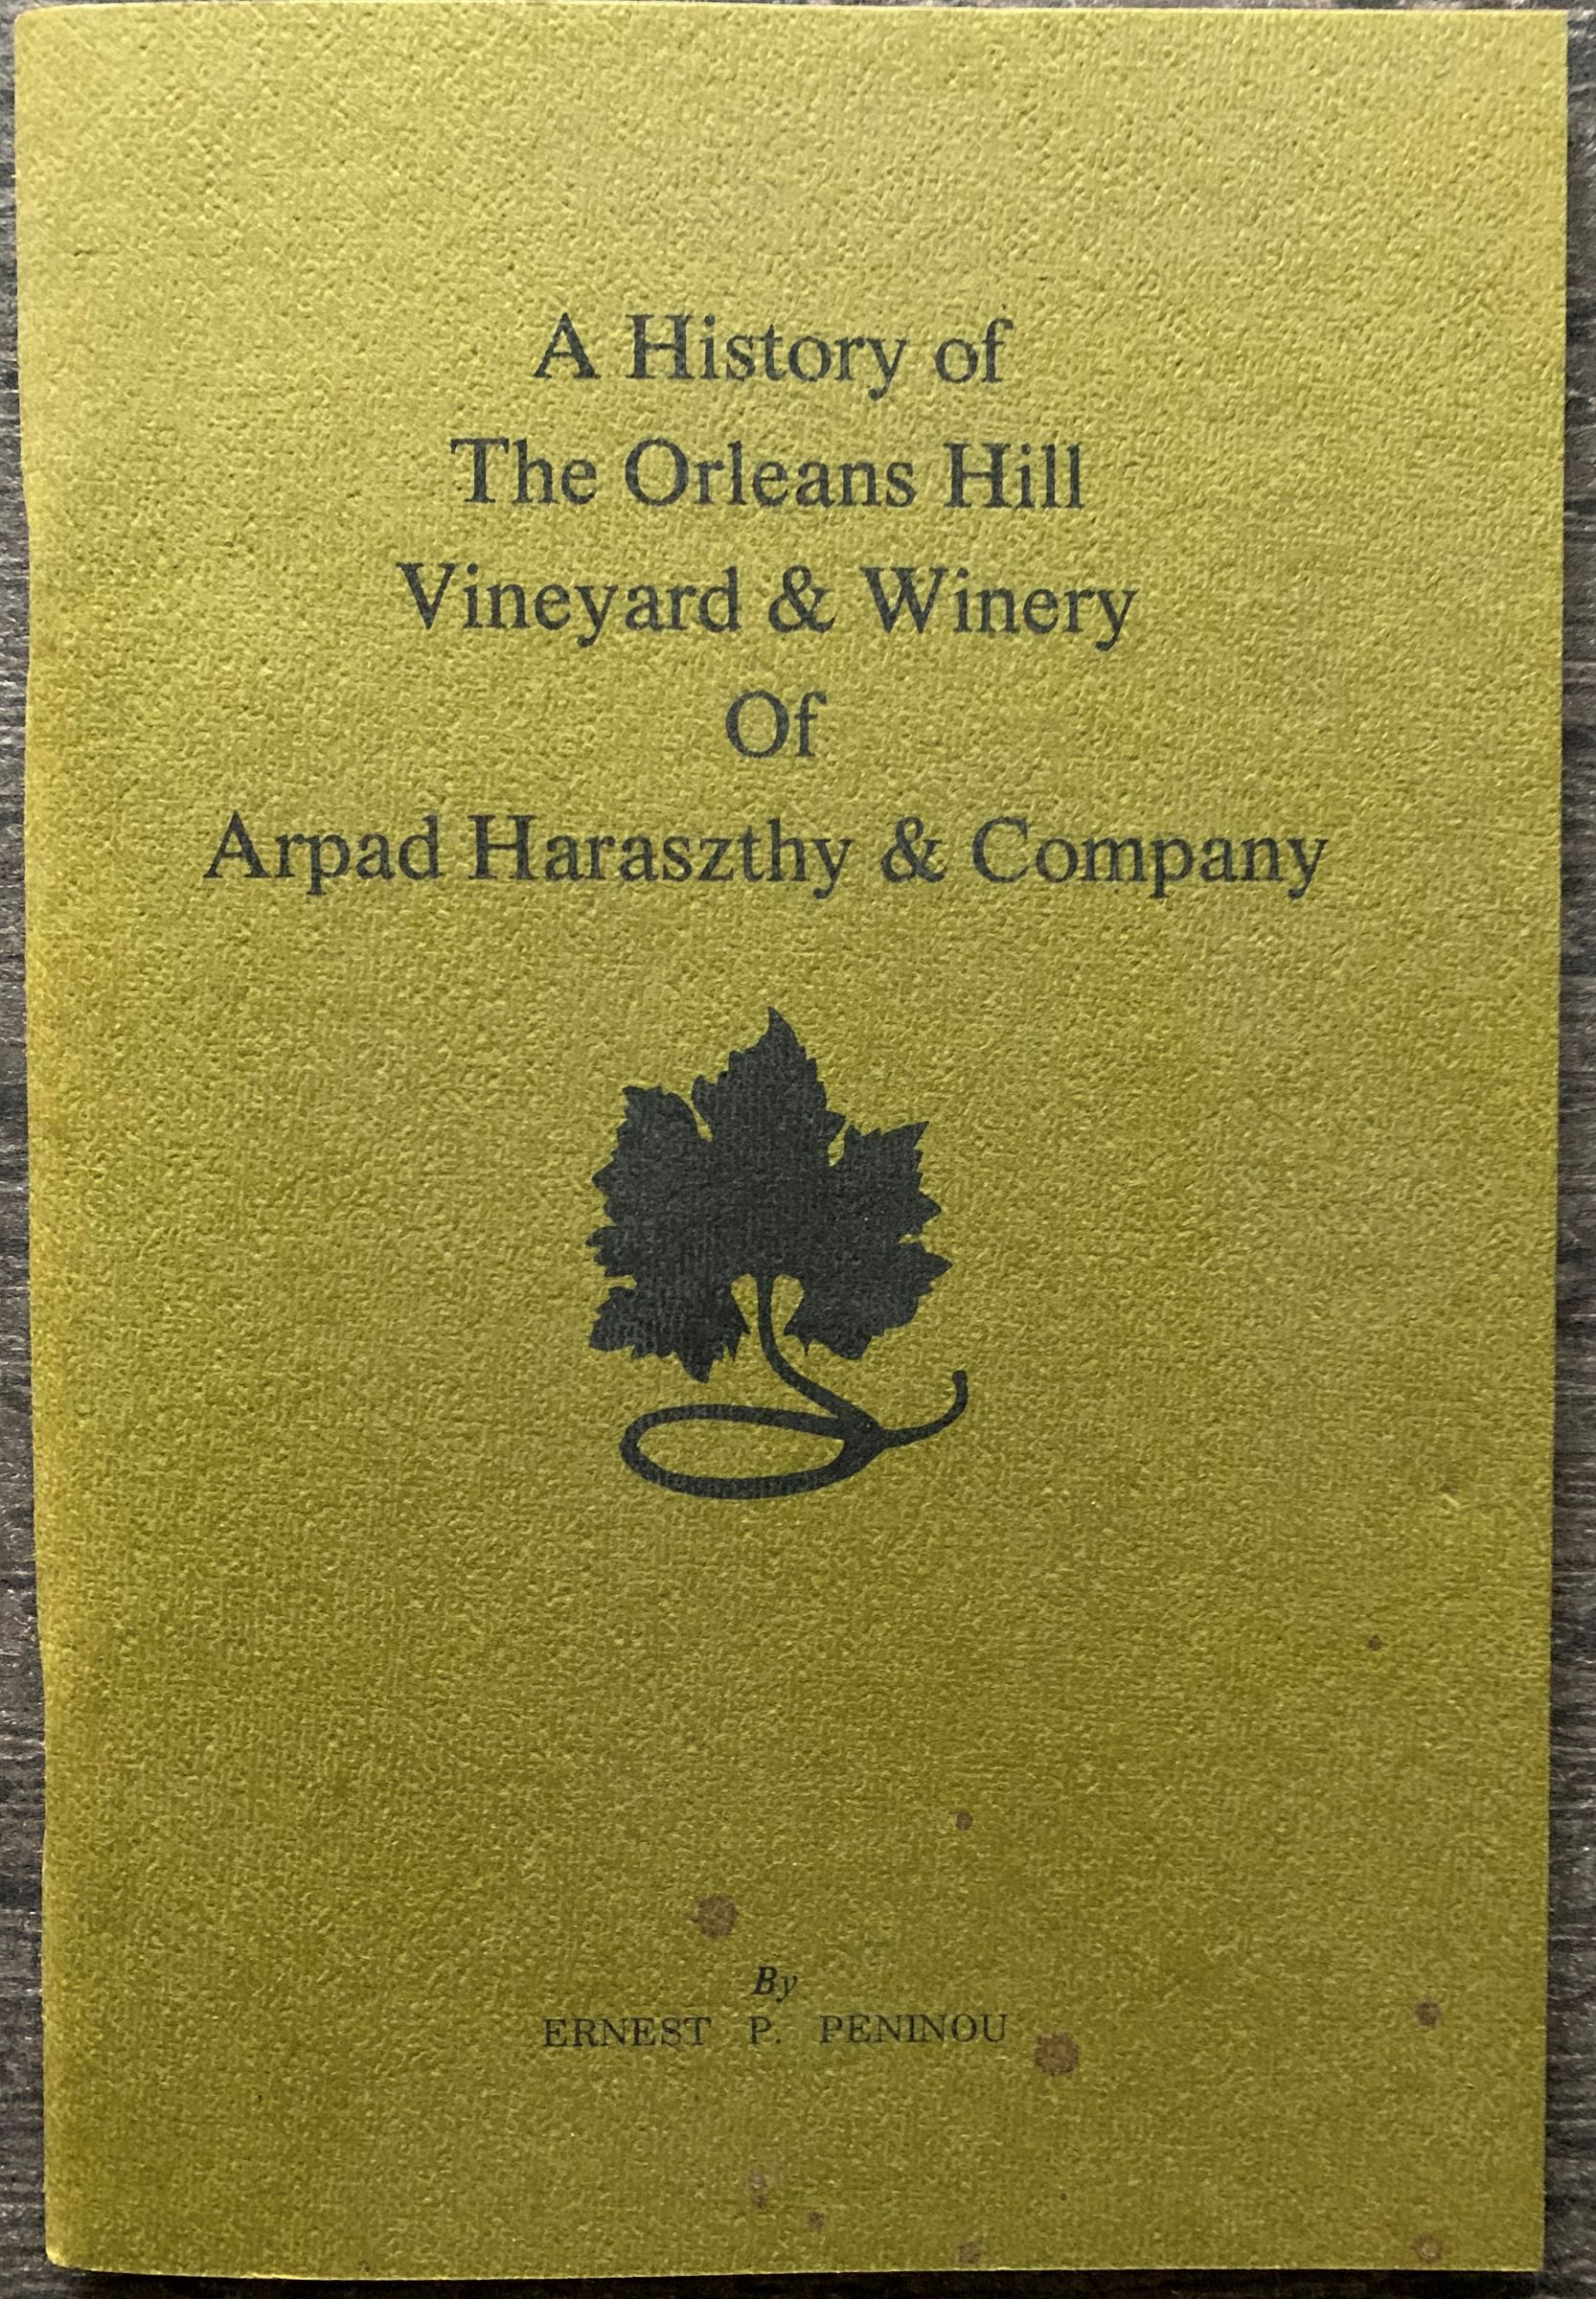 Image for A History of The Orleans Hill Vineyard & Winery of Arpad Haraszthy & Company.